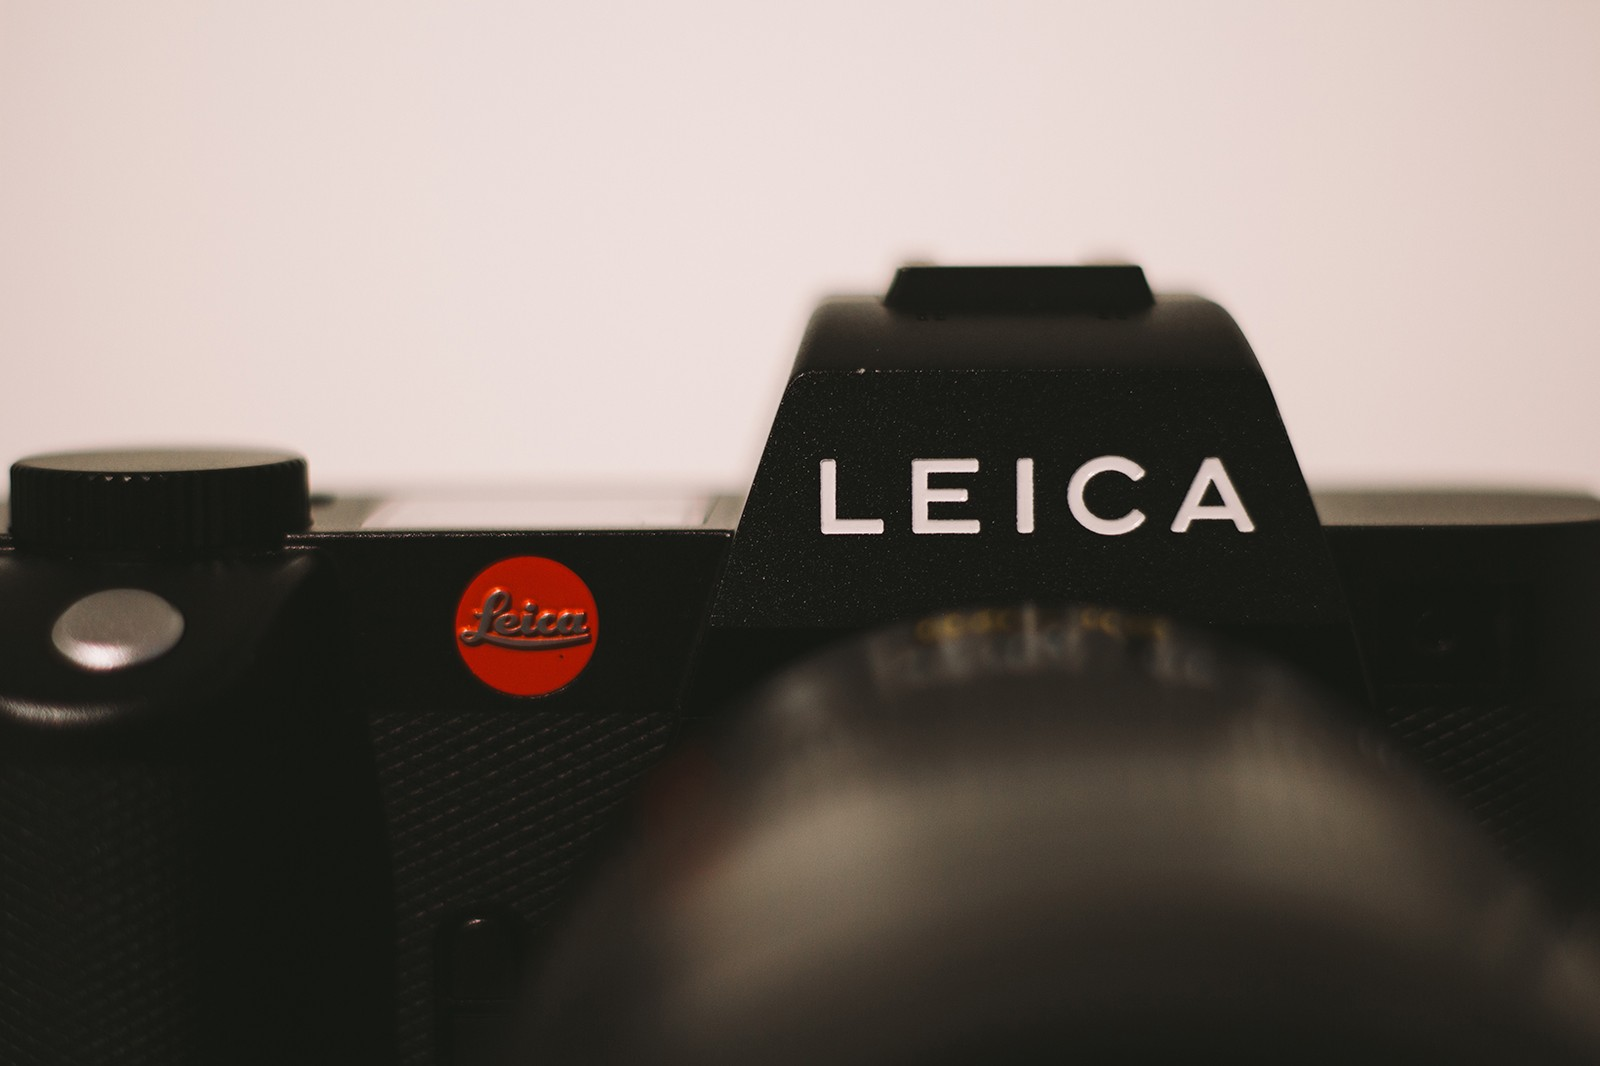 leica sl2 camera photography specs price tech nike air max sneakers black white